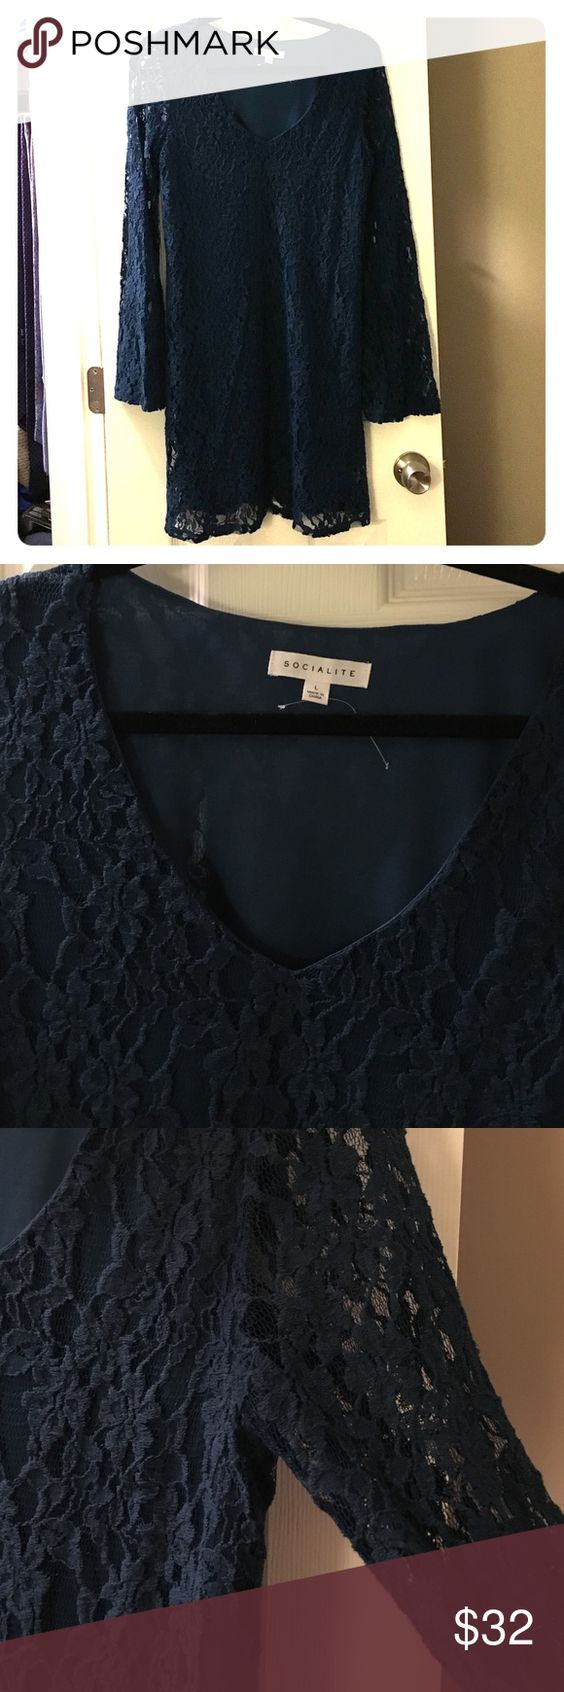 Cute blue lace minidress! NWOT NWOT never worn! Cute navy blue long sleeved lace dress. See thru arms. SOCIALITE Dresses